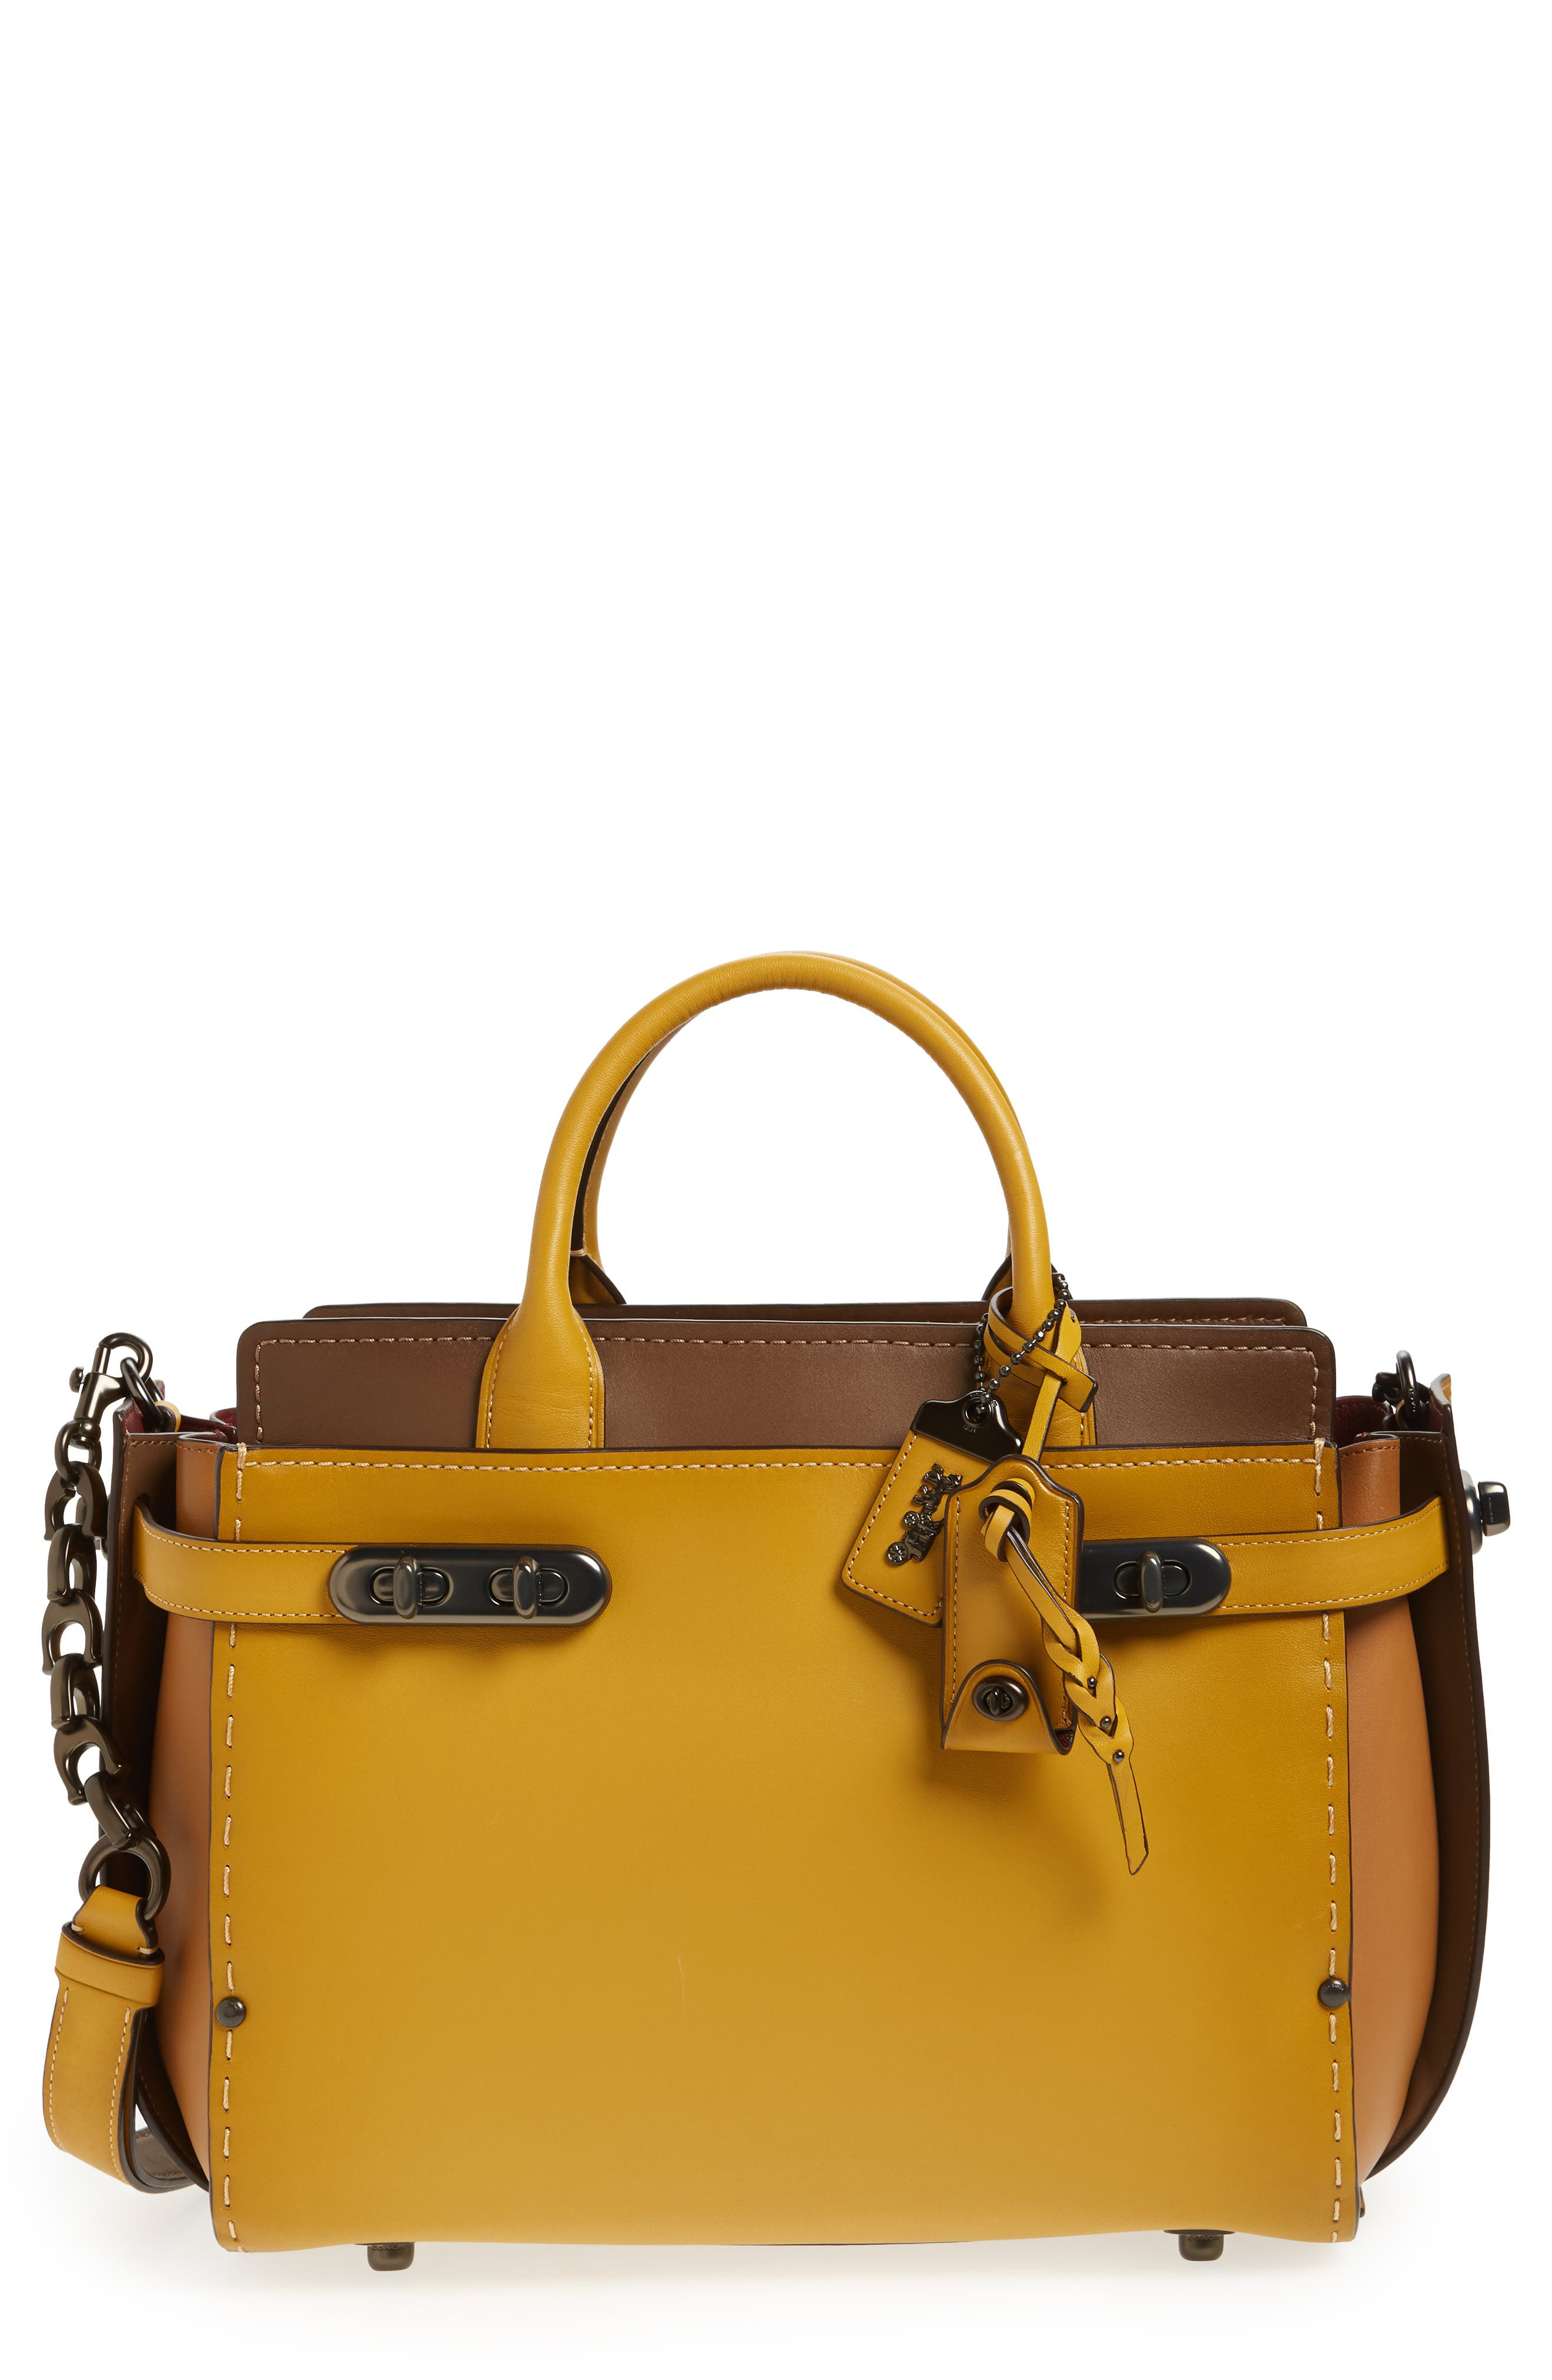 COACH Double Swagger Leather Satchel,                             Main thumbnail 1, color,                             700